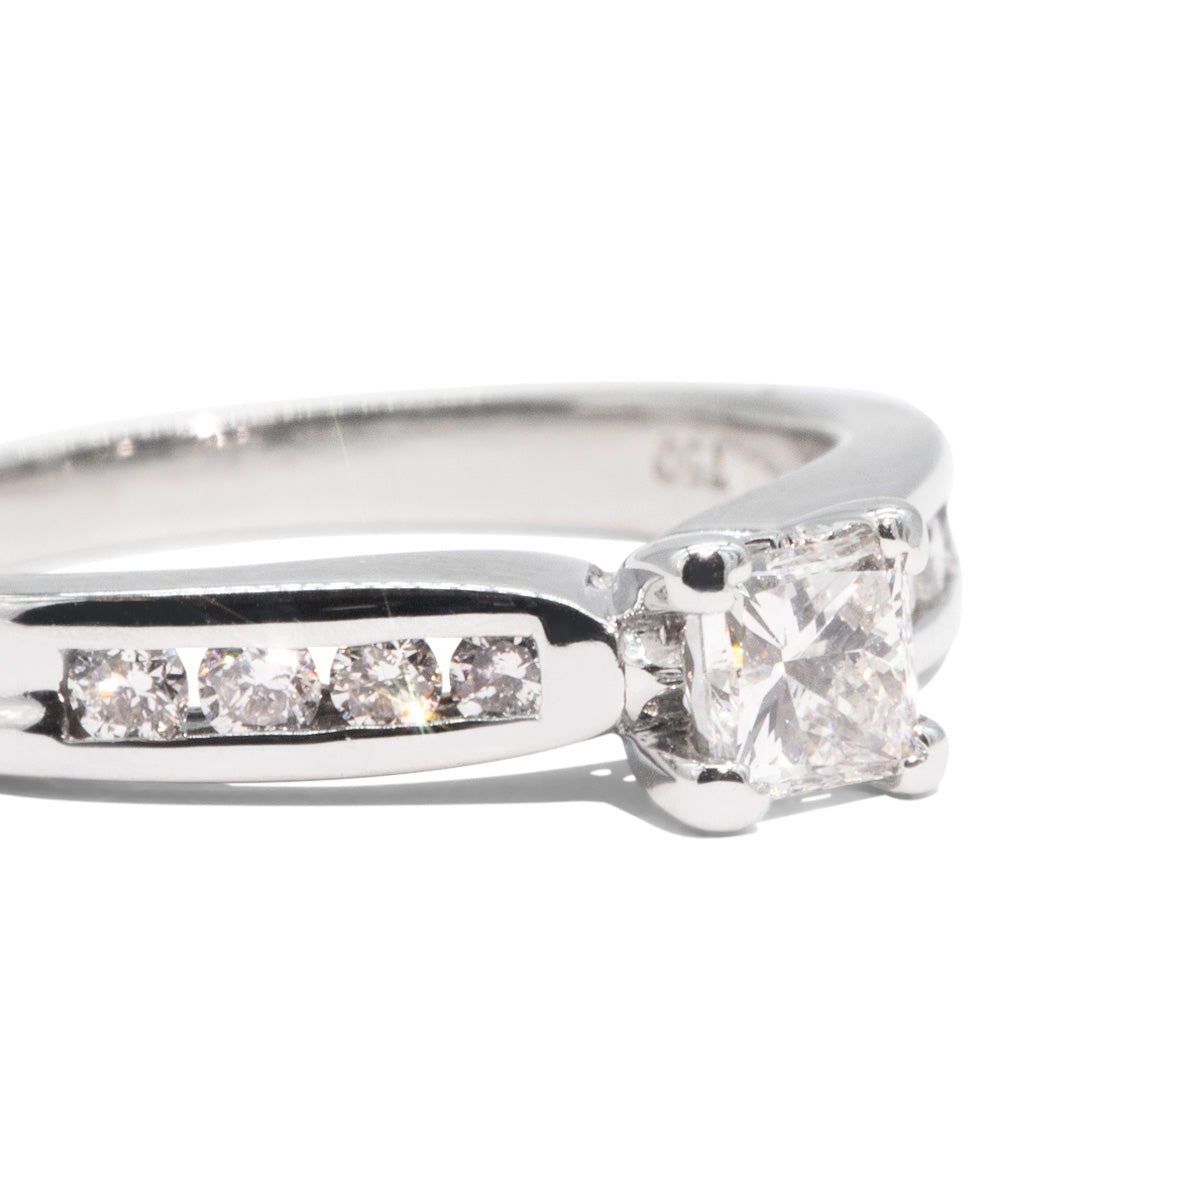 The Saint Vintage Diamond Ring